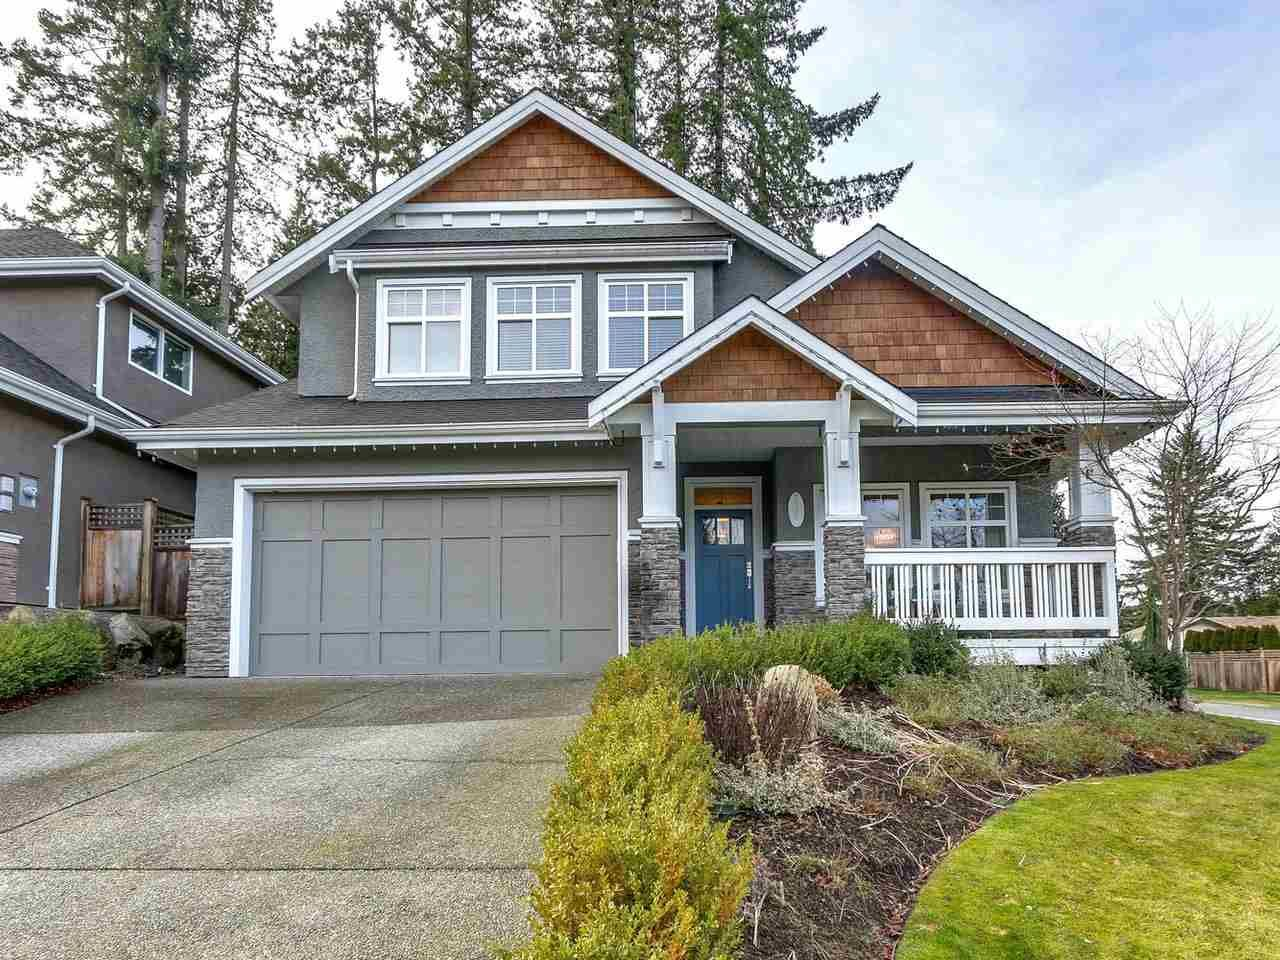 """Main Photo: 2957 147A Street in Surrey: Elgin Chantrell House for sale in """"Heritage Trails"""" (South Surrey White Rock)  : MLS®# R2235553"""